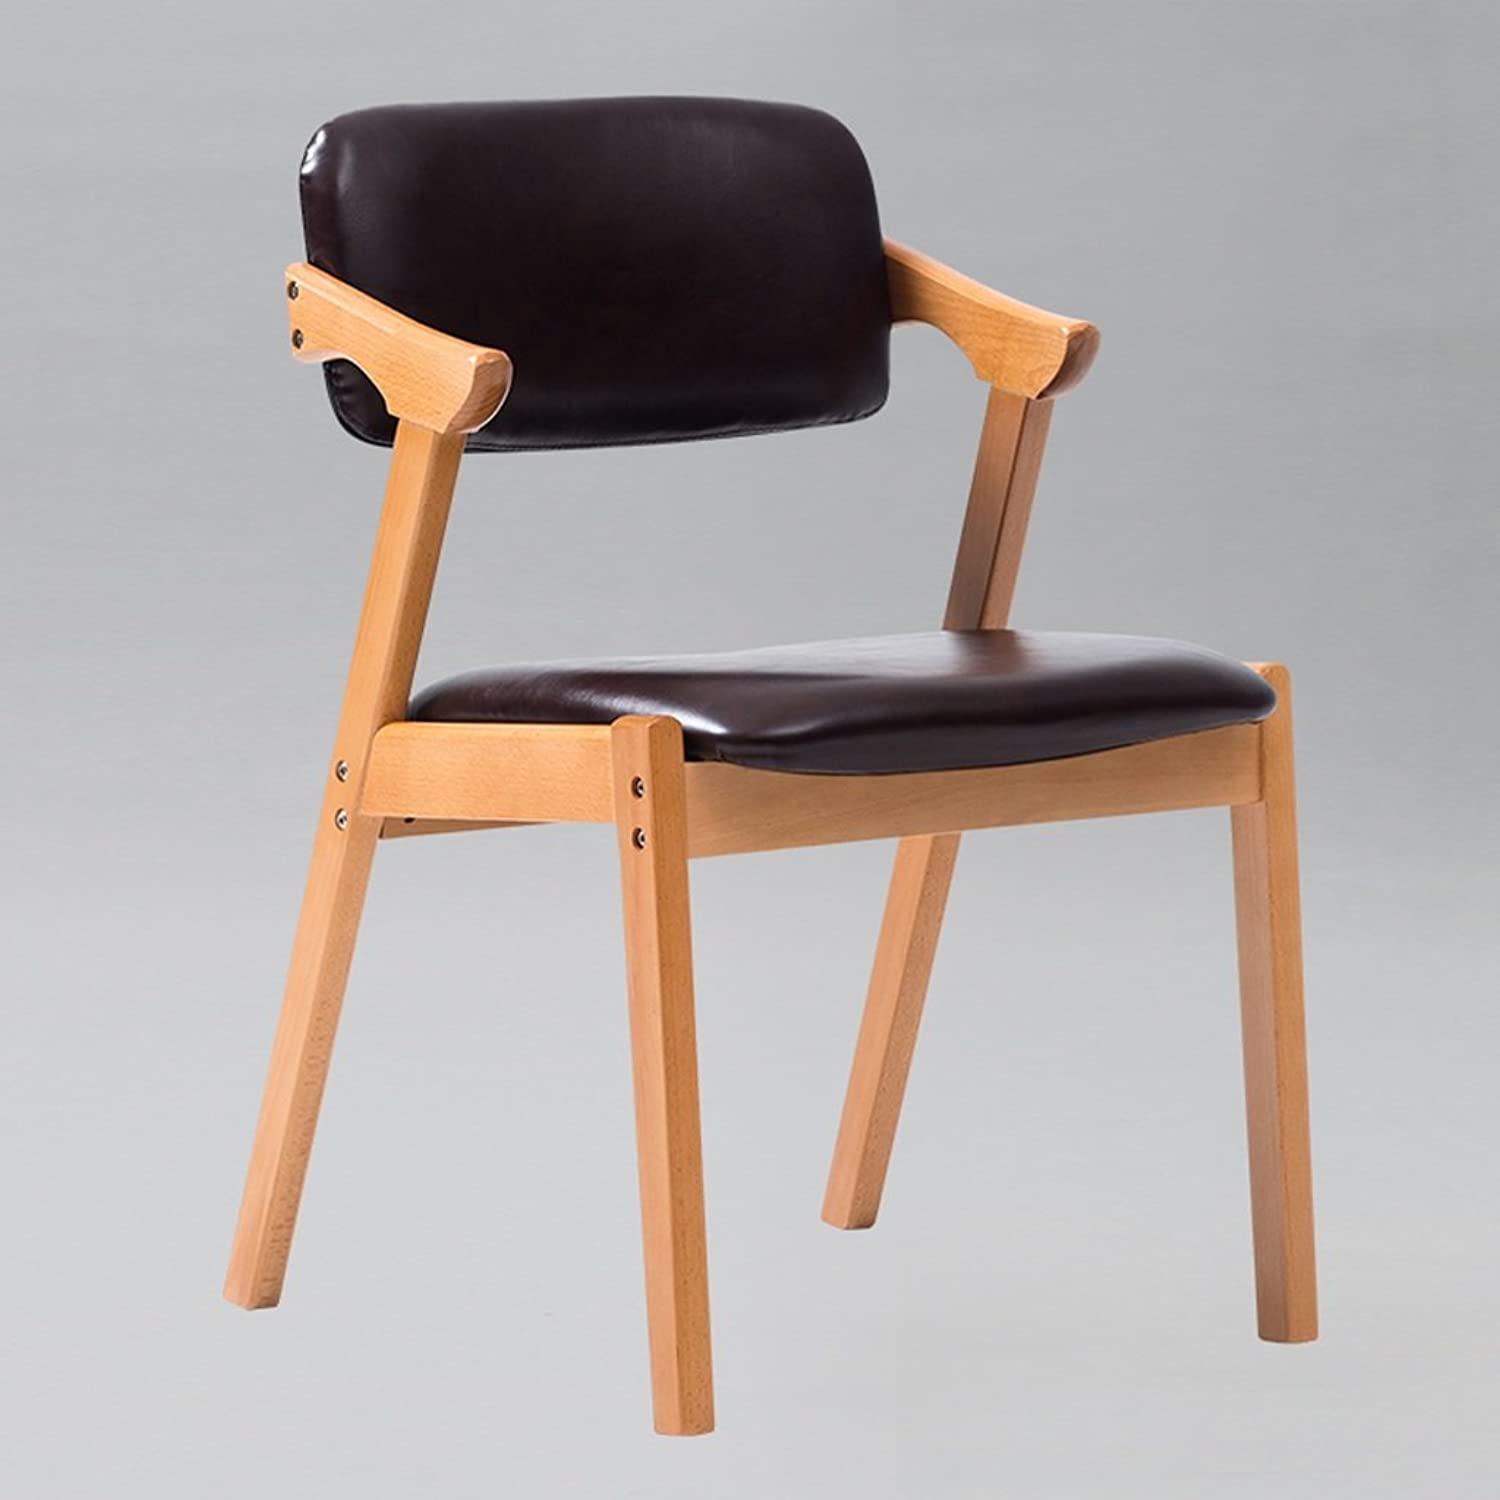 Backrest Stool Home Dining Table Stool Nordic Minimalist Cafe Leather Chair Solid Wooden Stool Feet (color   Dark Brown)